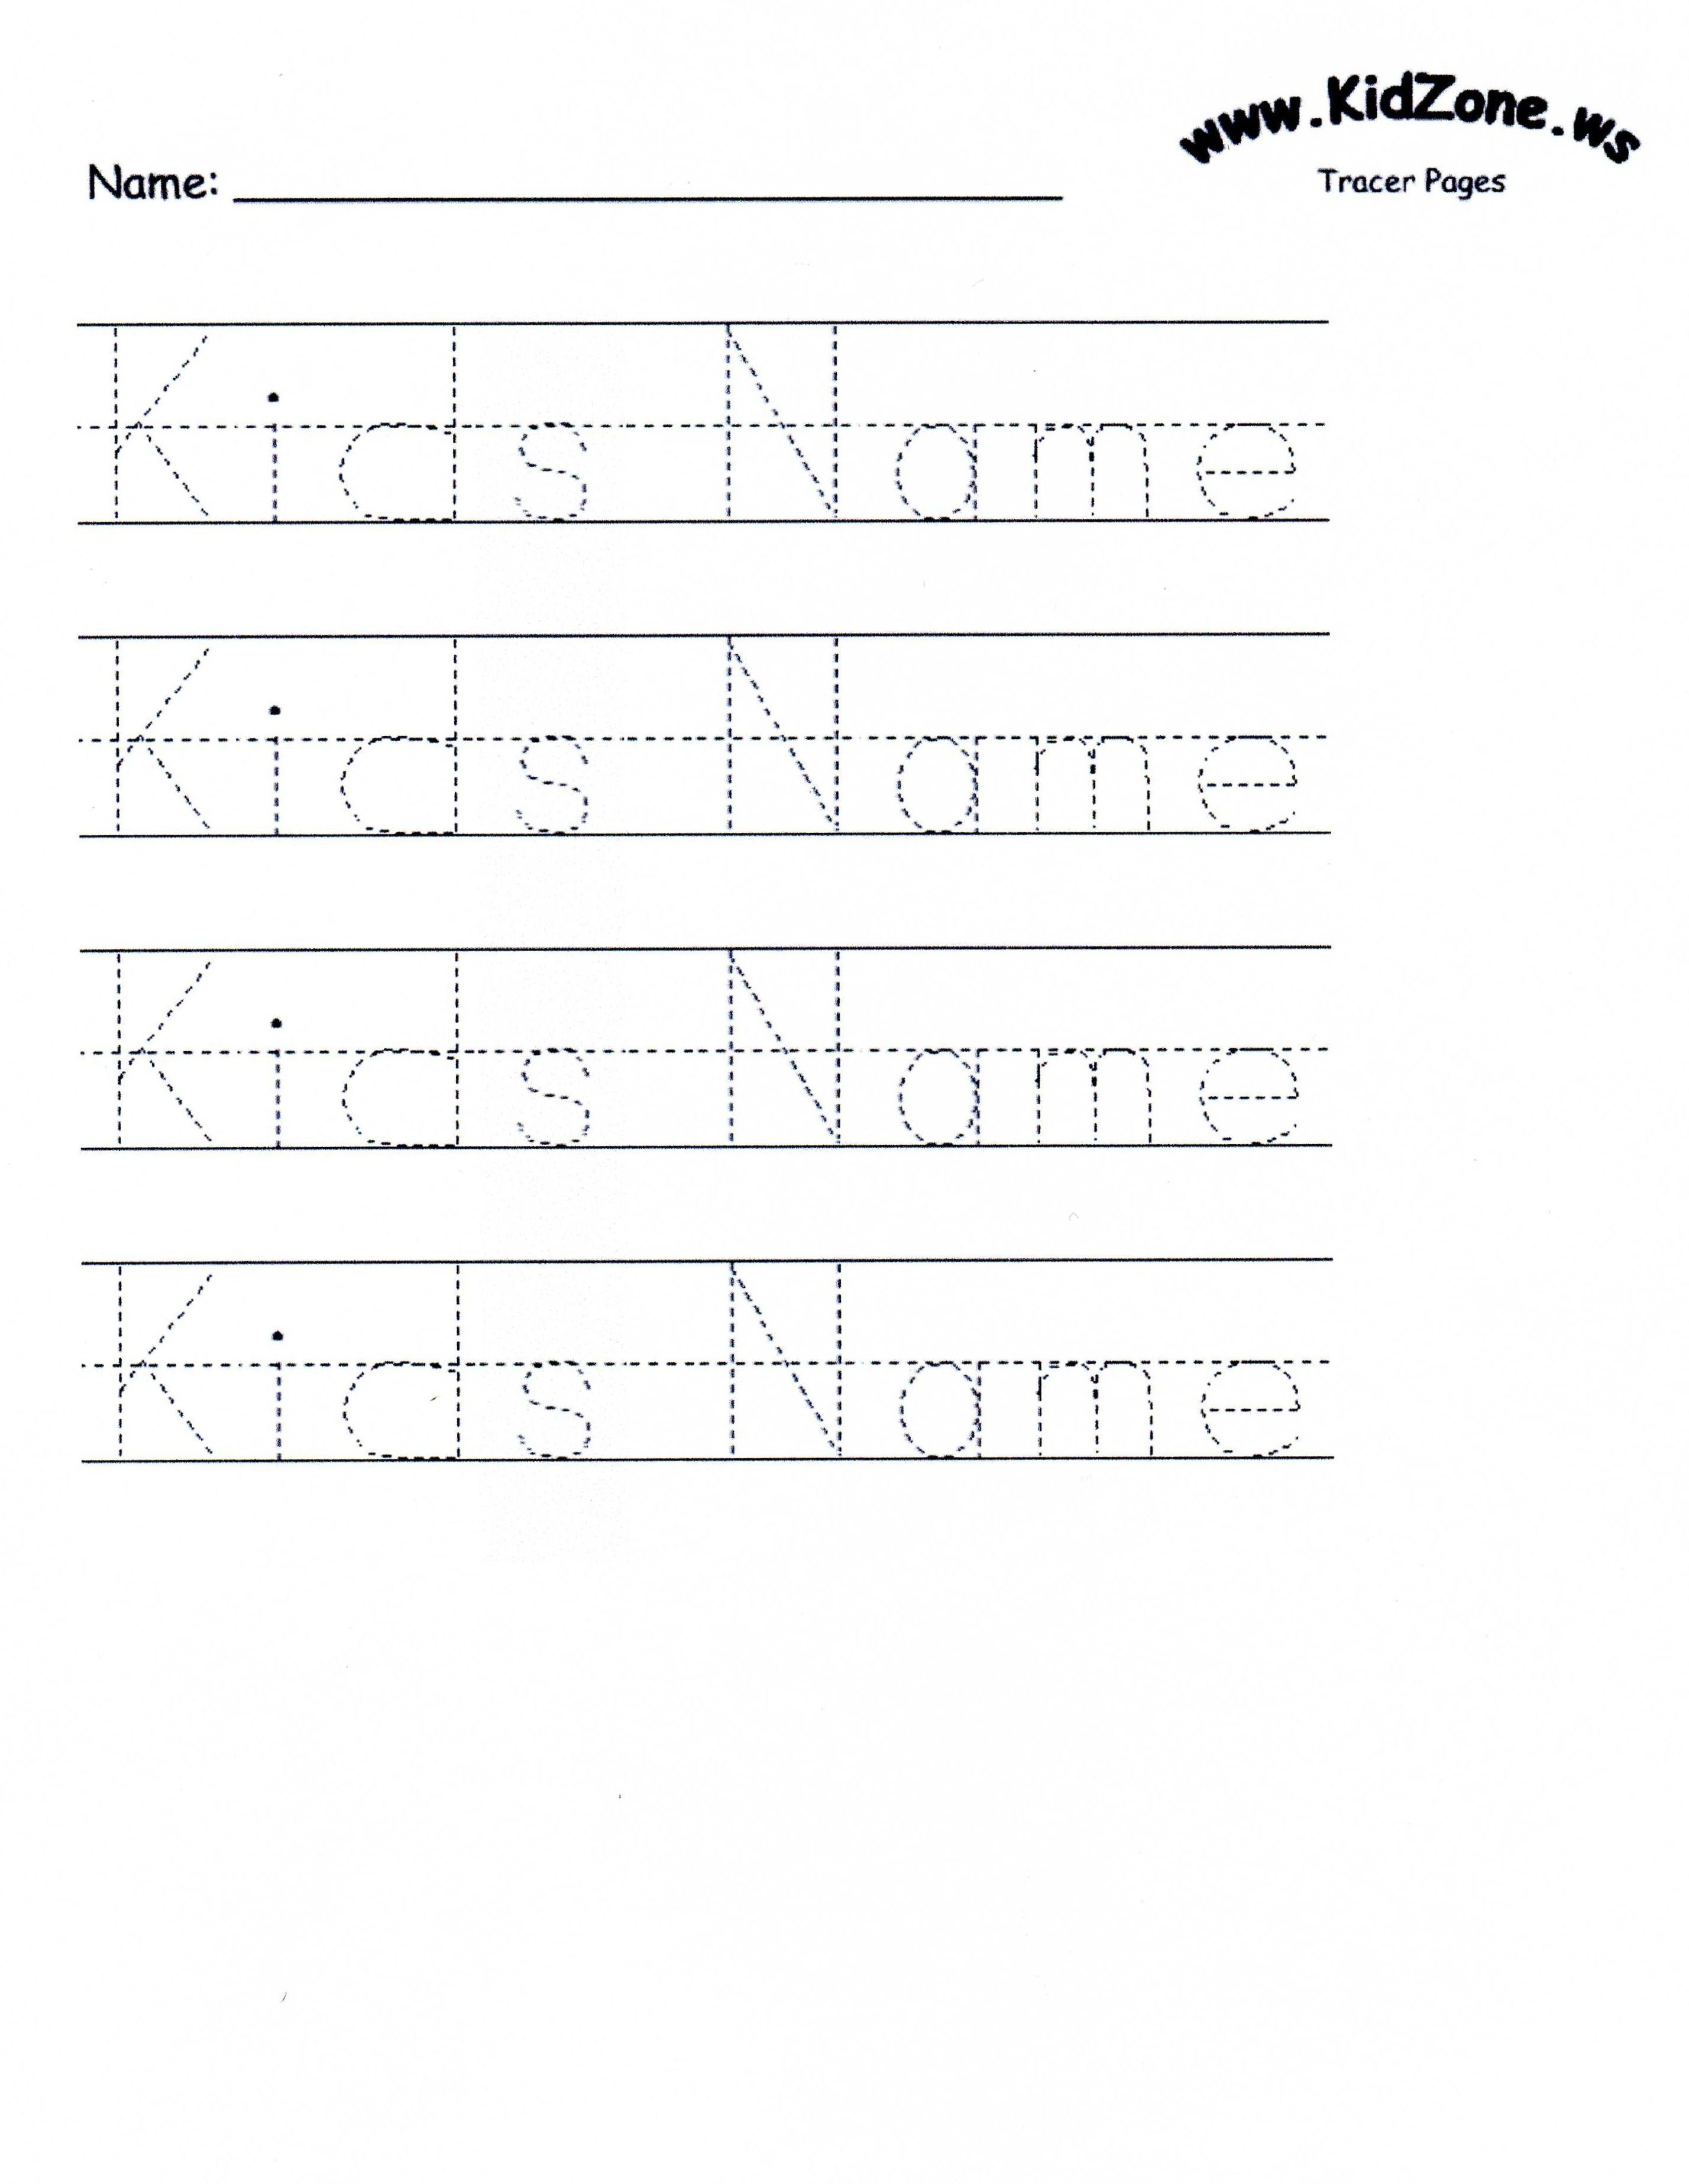 Customizable Printable Letter Pages | Teaching Mackenzie And Juliana - Free Printable Preschool Name Tracer Pages